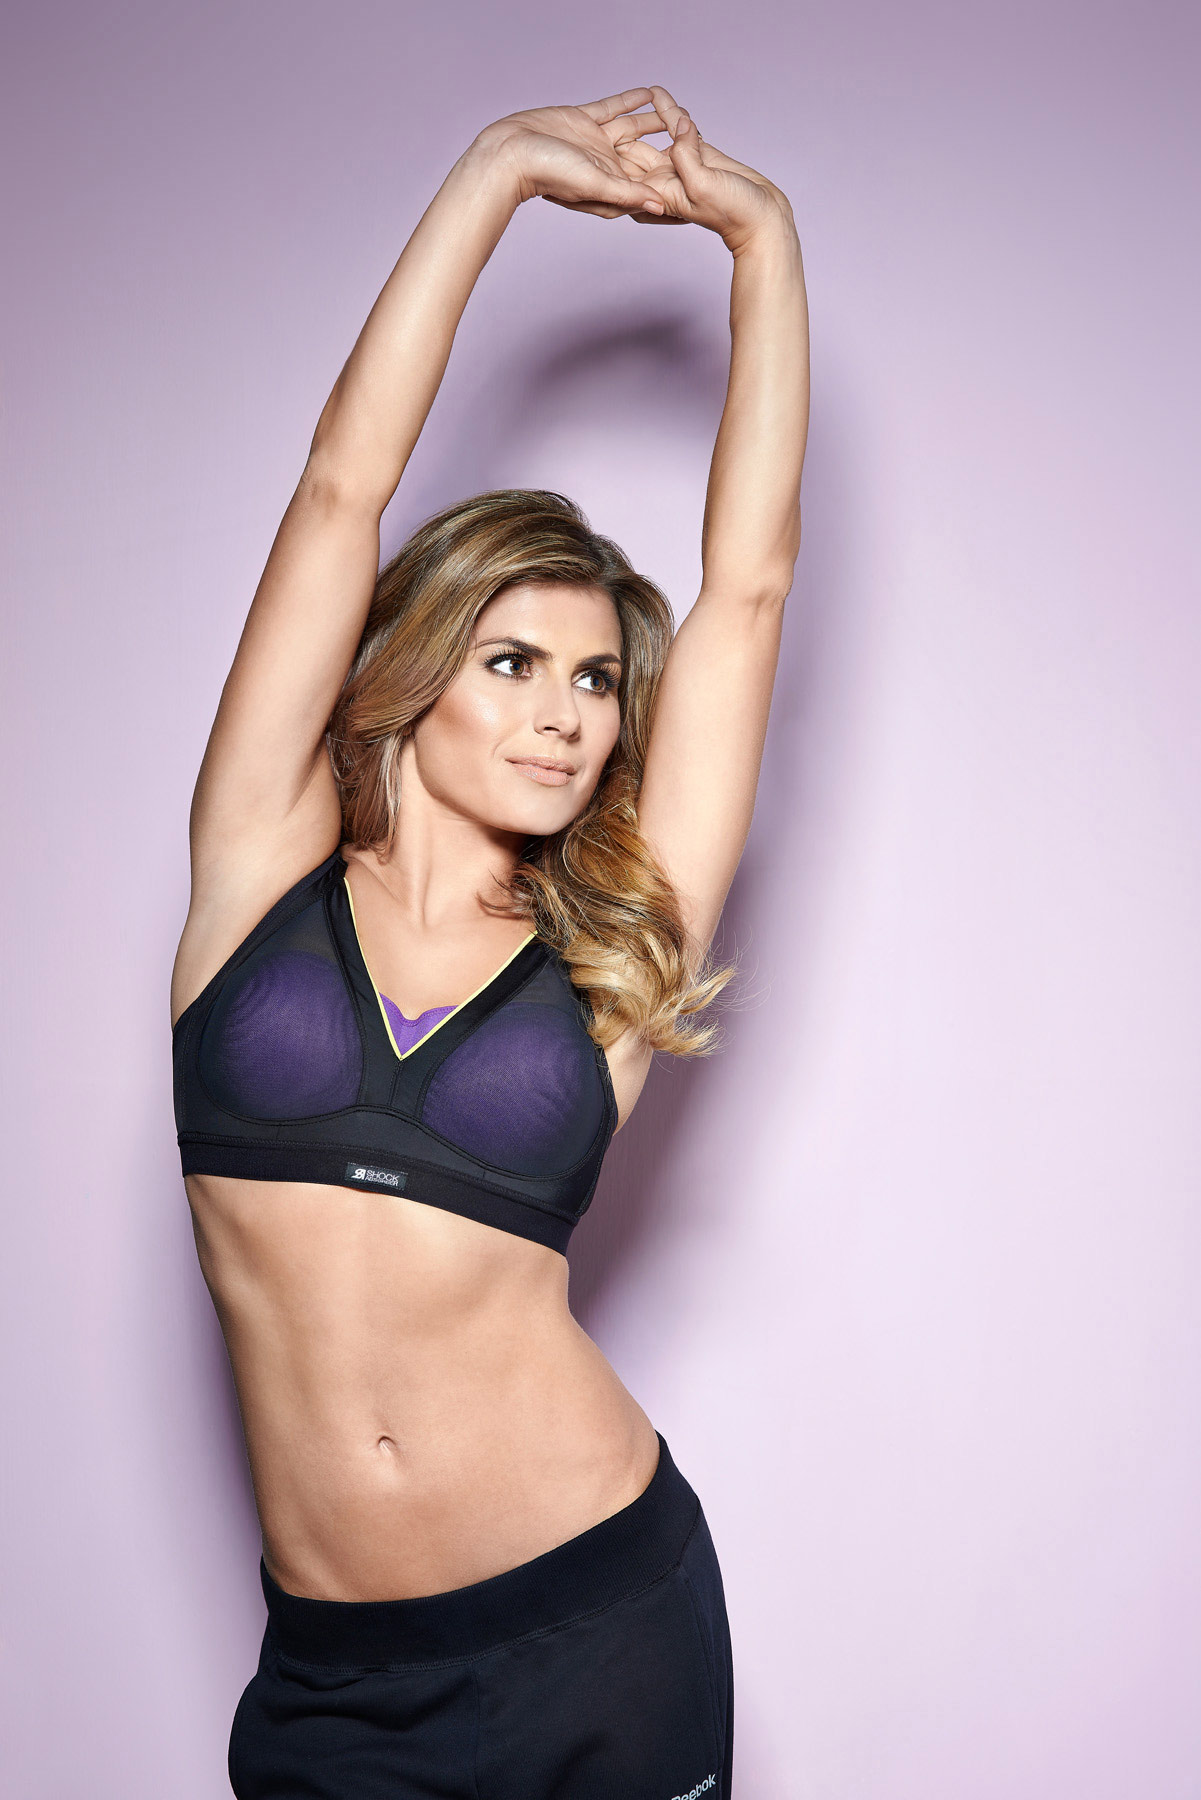 Zoe Hardman in sportswear on a pink background